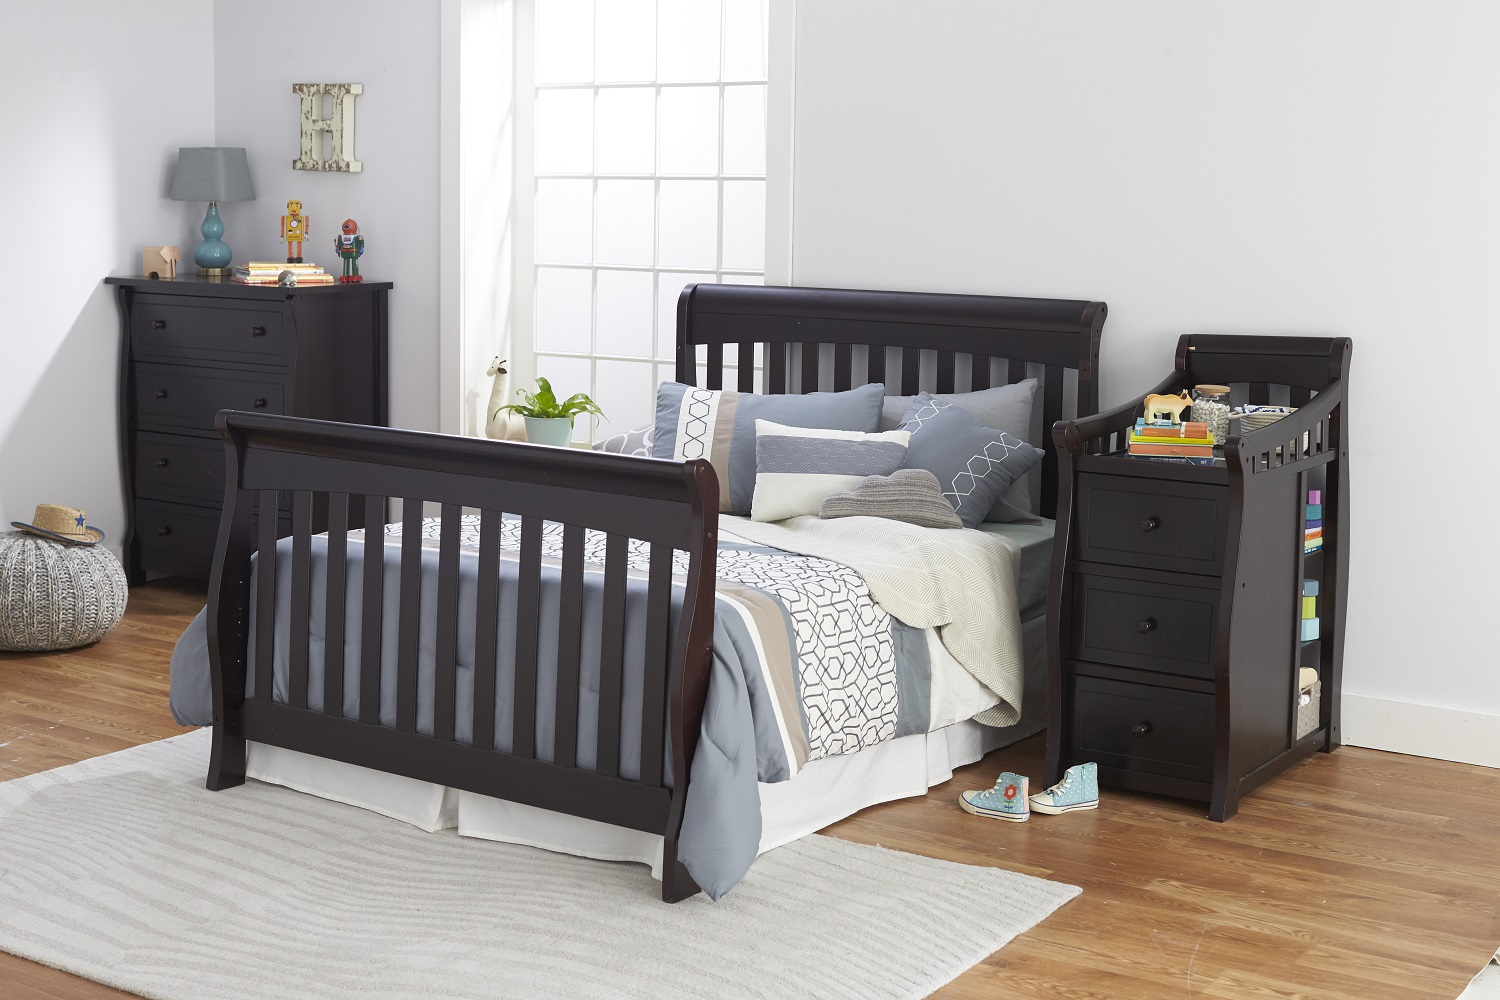 Sorelle Torino Full Size Bed Rails